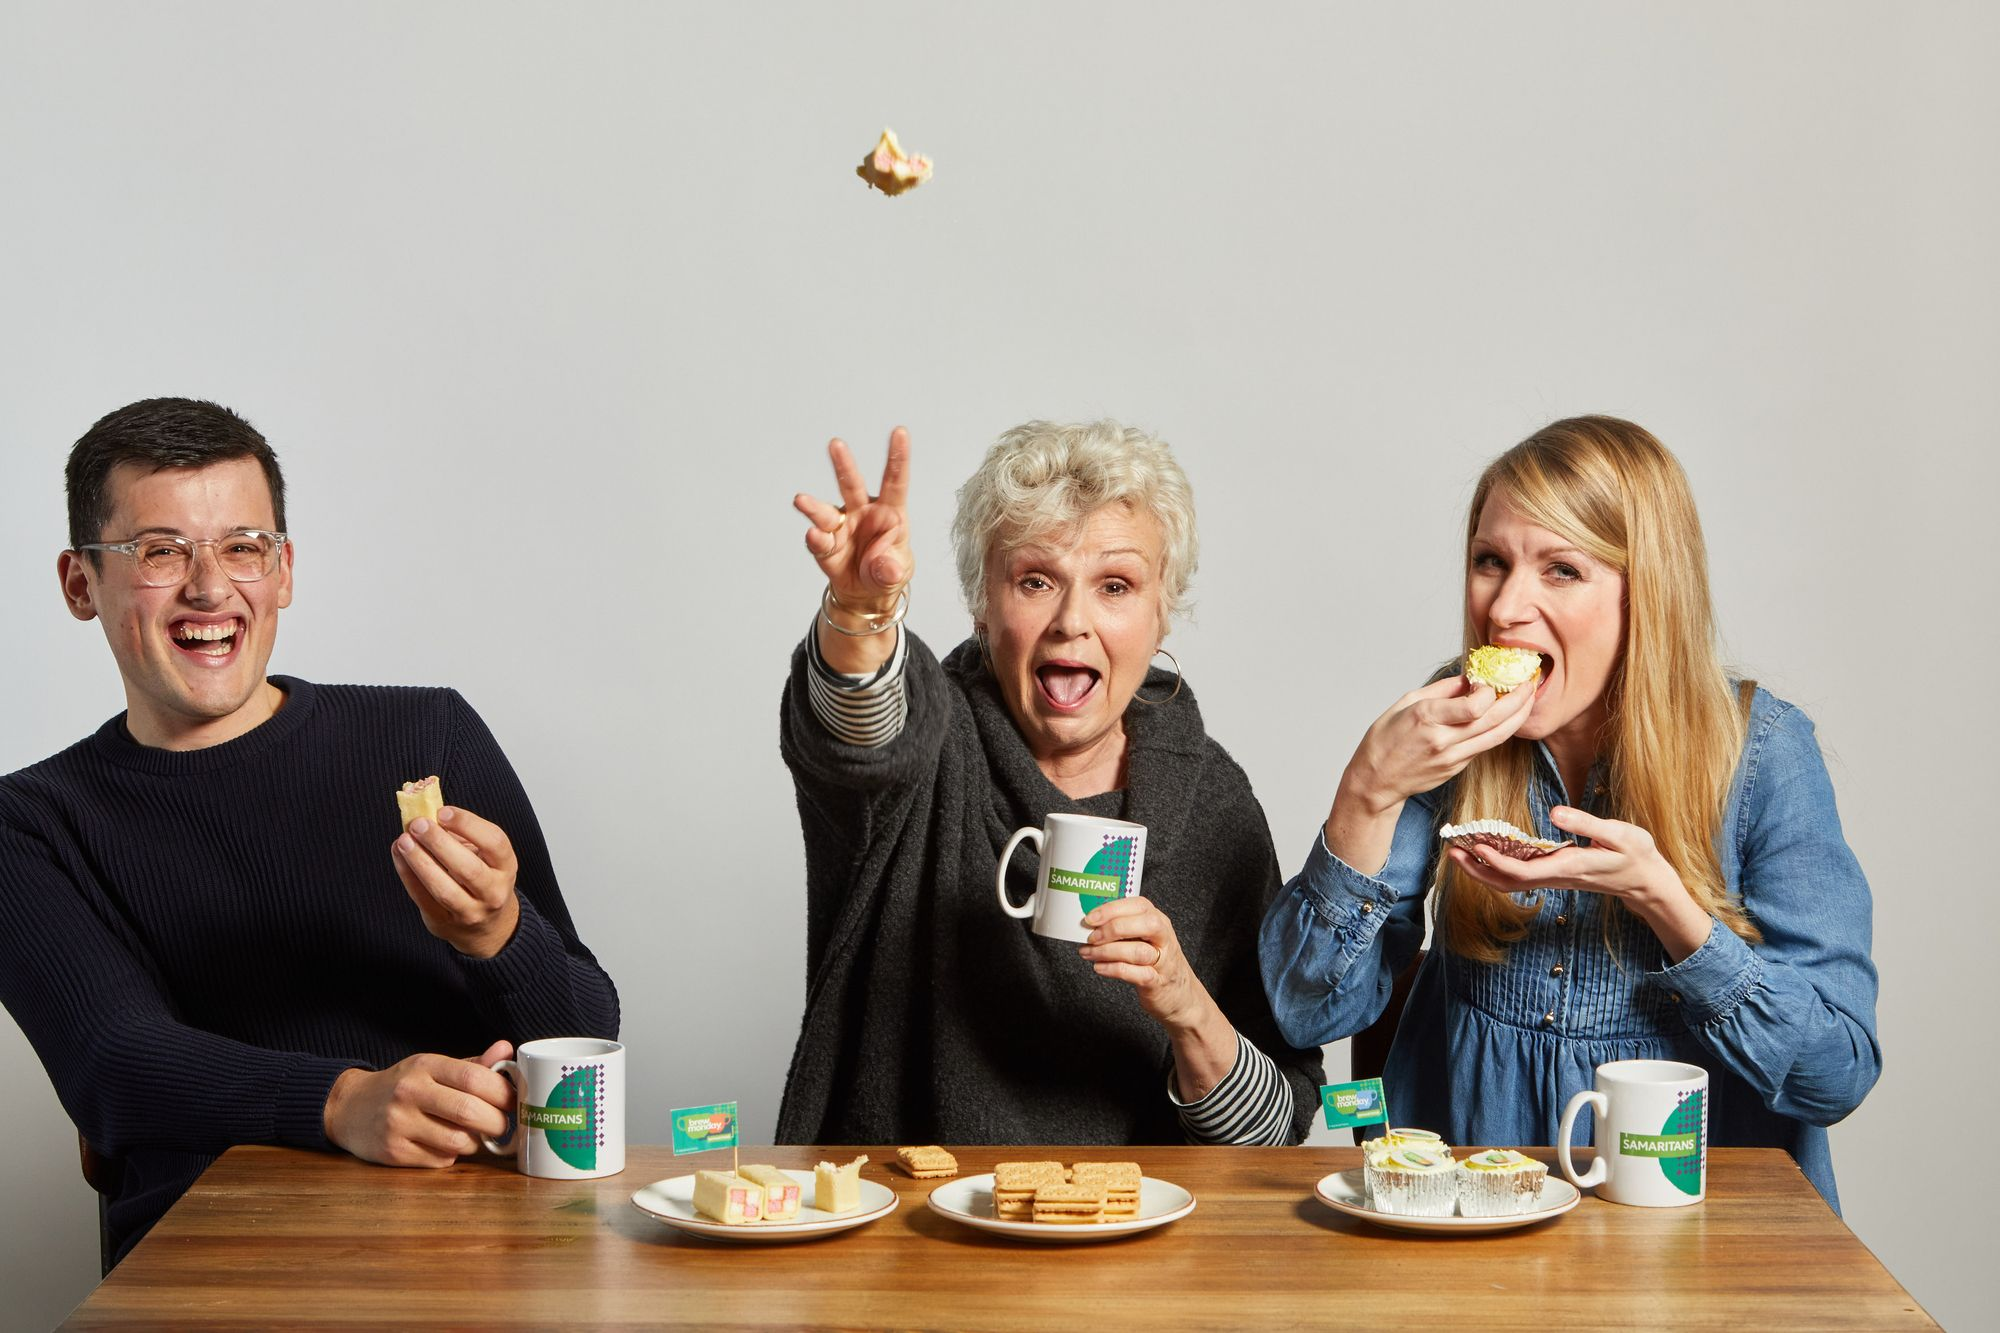 Michael Chakraverty, Dame Julie Walters and Rachel Parris share a cup of tea and cake together in support of Brew Monday